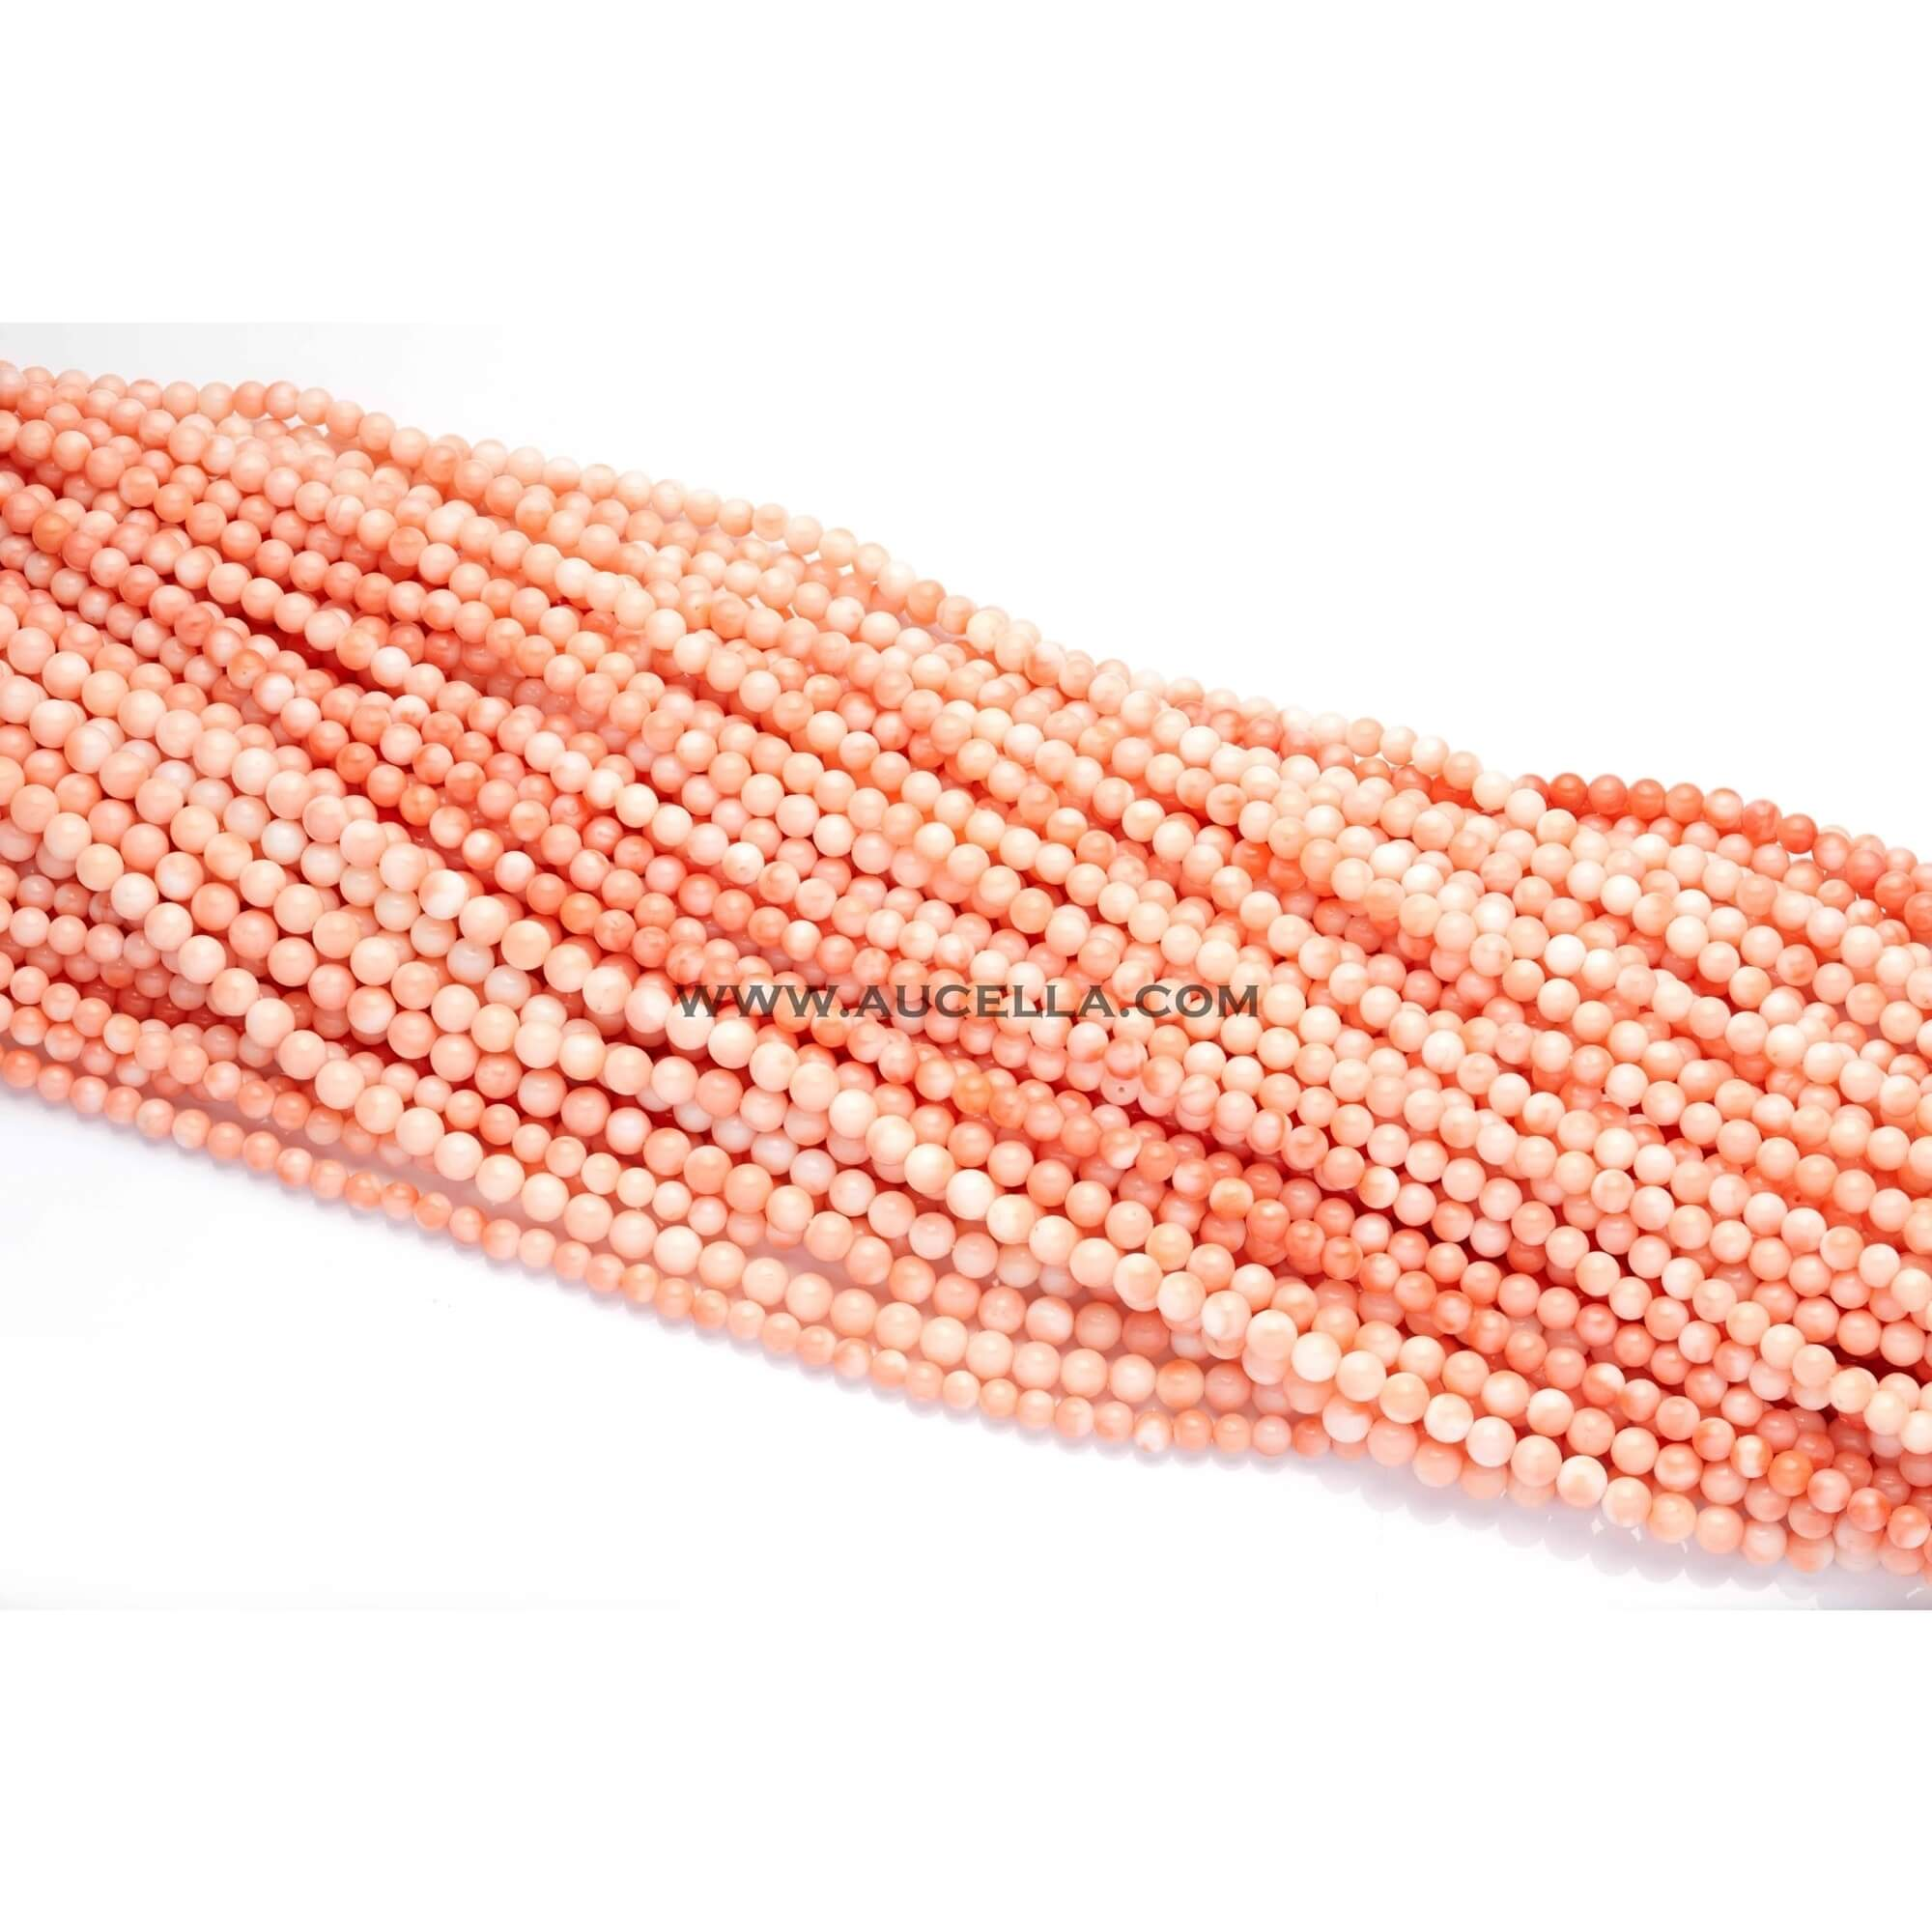 Natural pink coral beads shape size mm 3-4